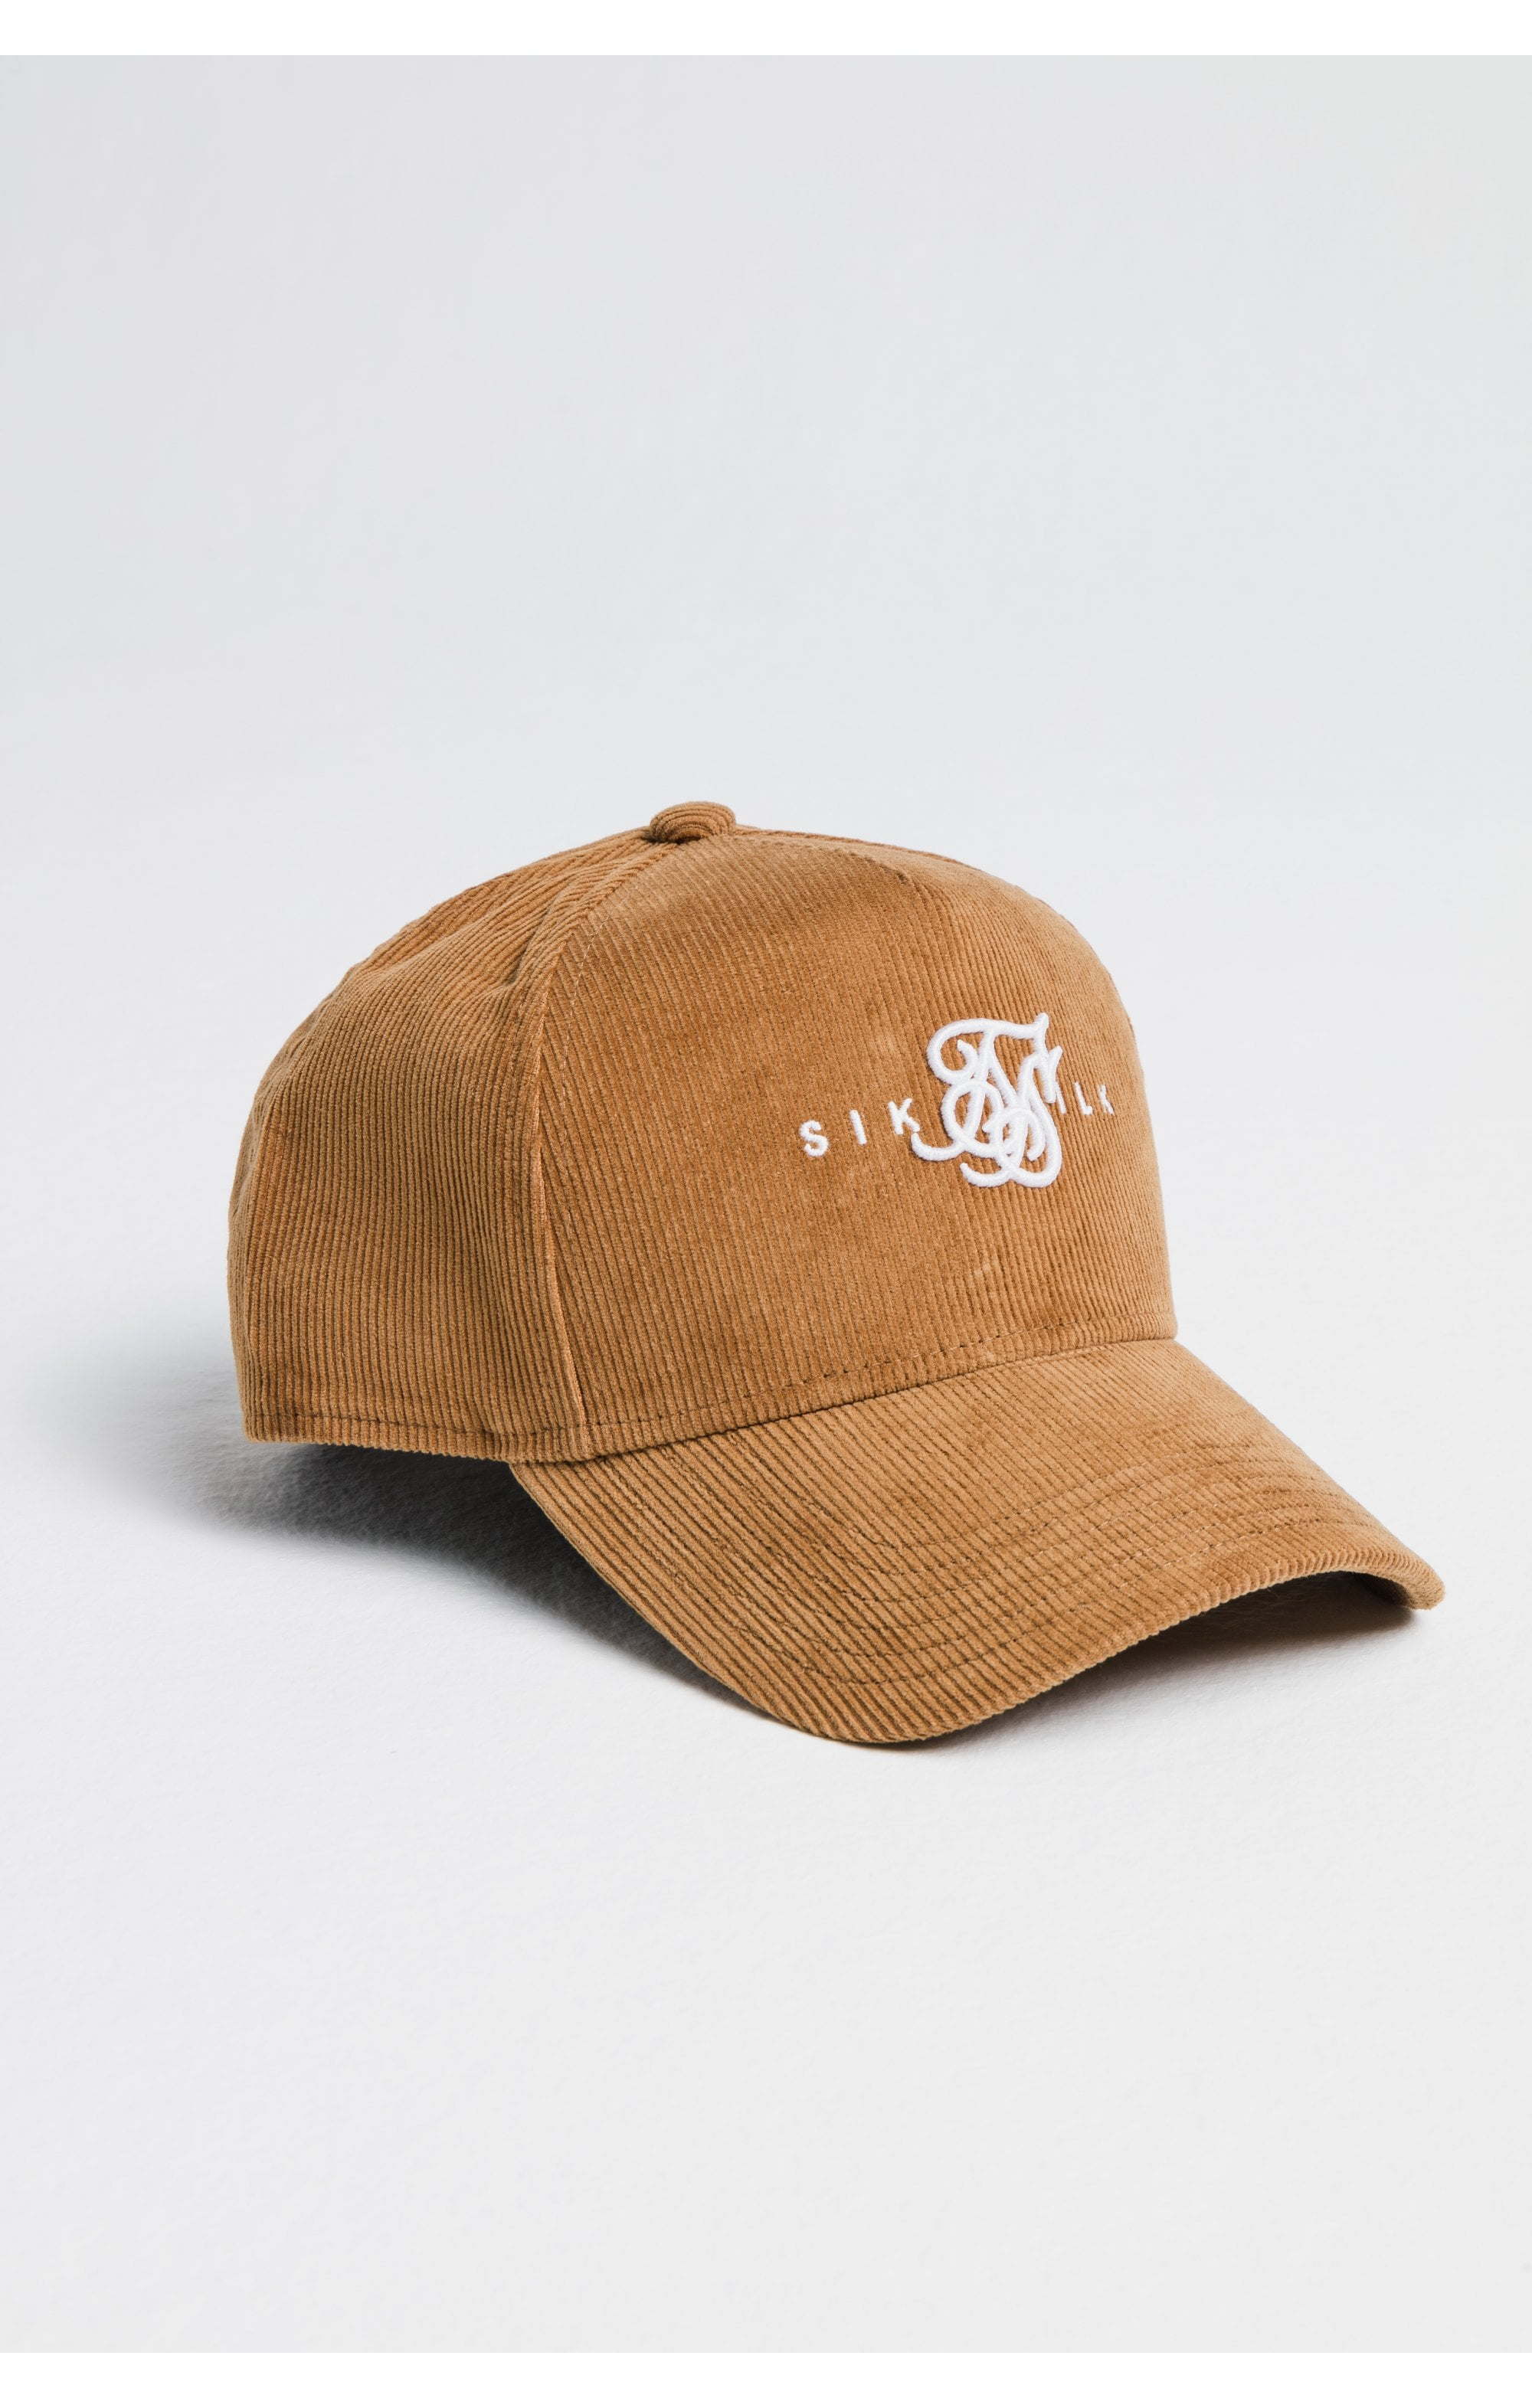 Load image into Gallery viewer, SikSilk Full Cord Trucker - Mustard